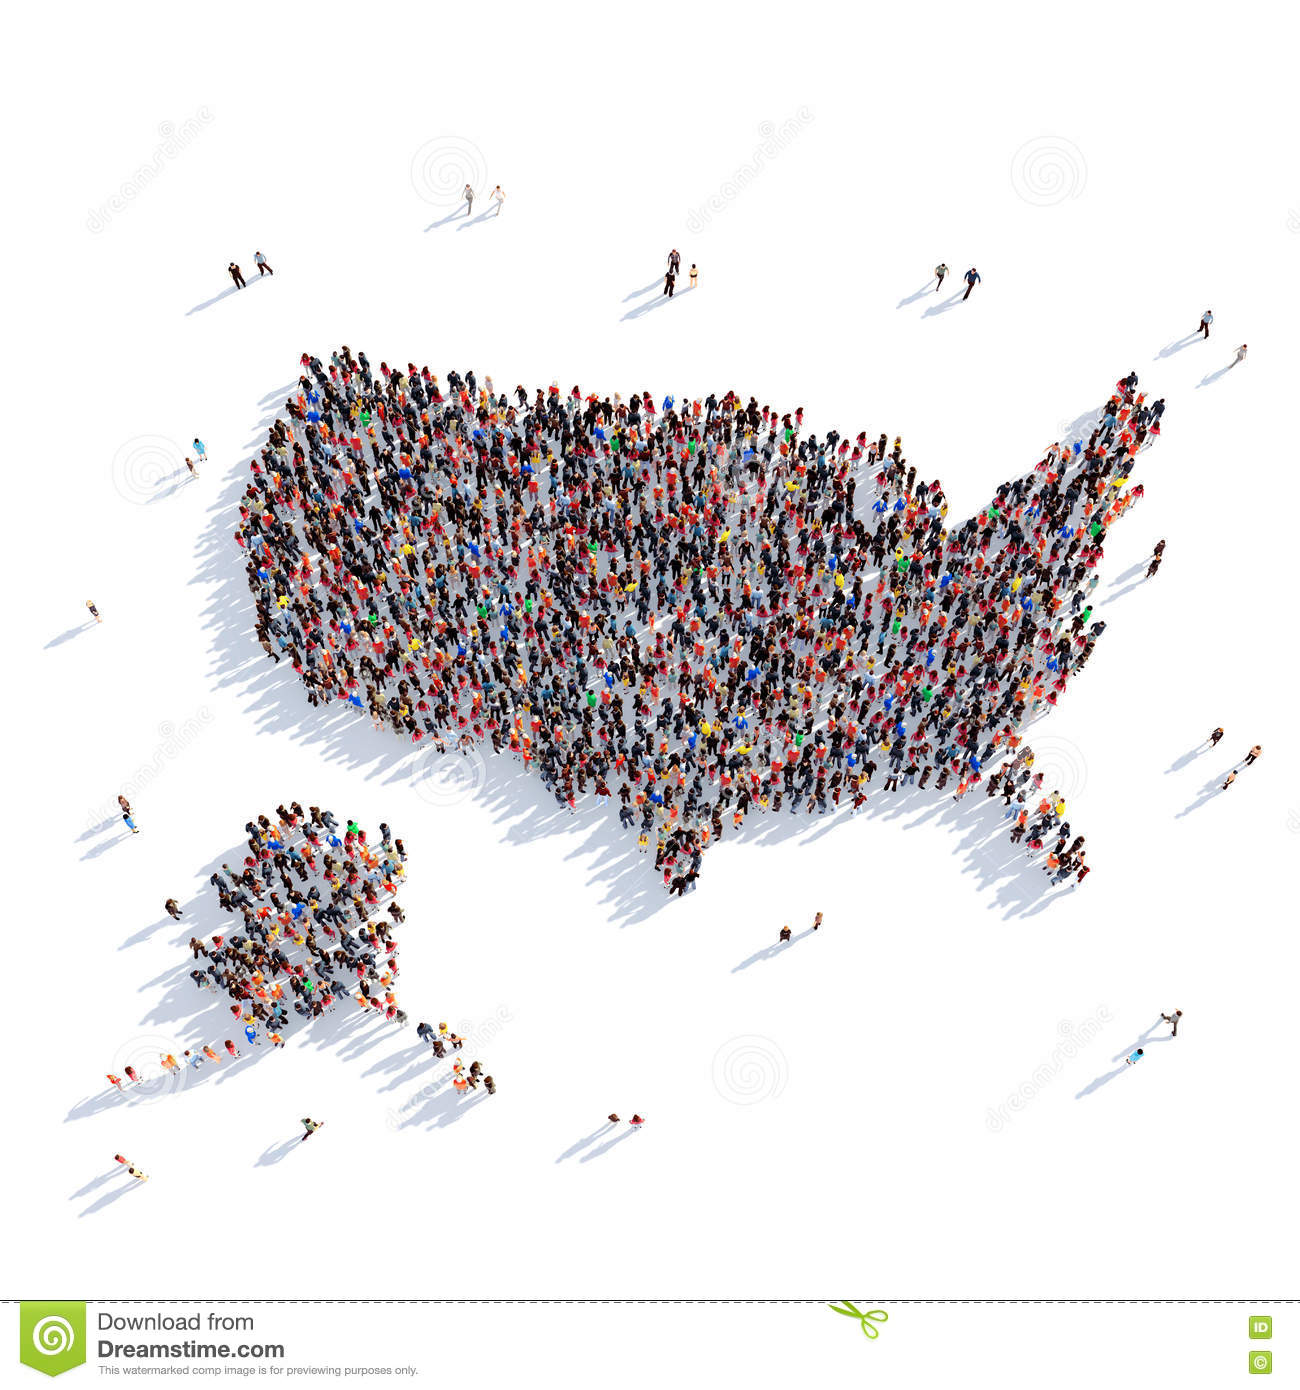 People Group Shape Map United States Stock Image - Image of ... on fcc line a map, voyage map, flight connections map, open map, robin hood map, professional map, happy map, no man's land map, pittsburgh metro map, earth drawings north america map, world map, the shining map, wireless connection map,